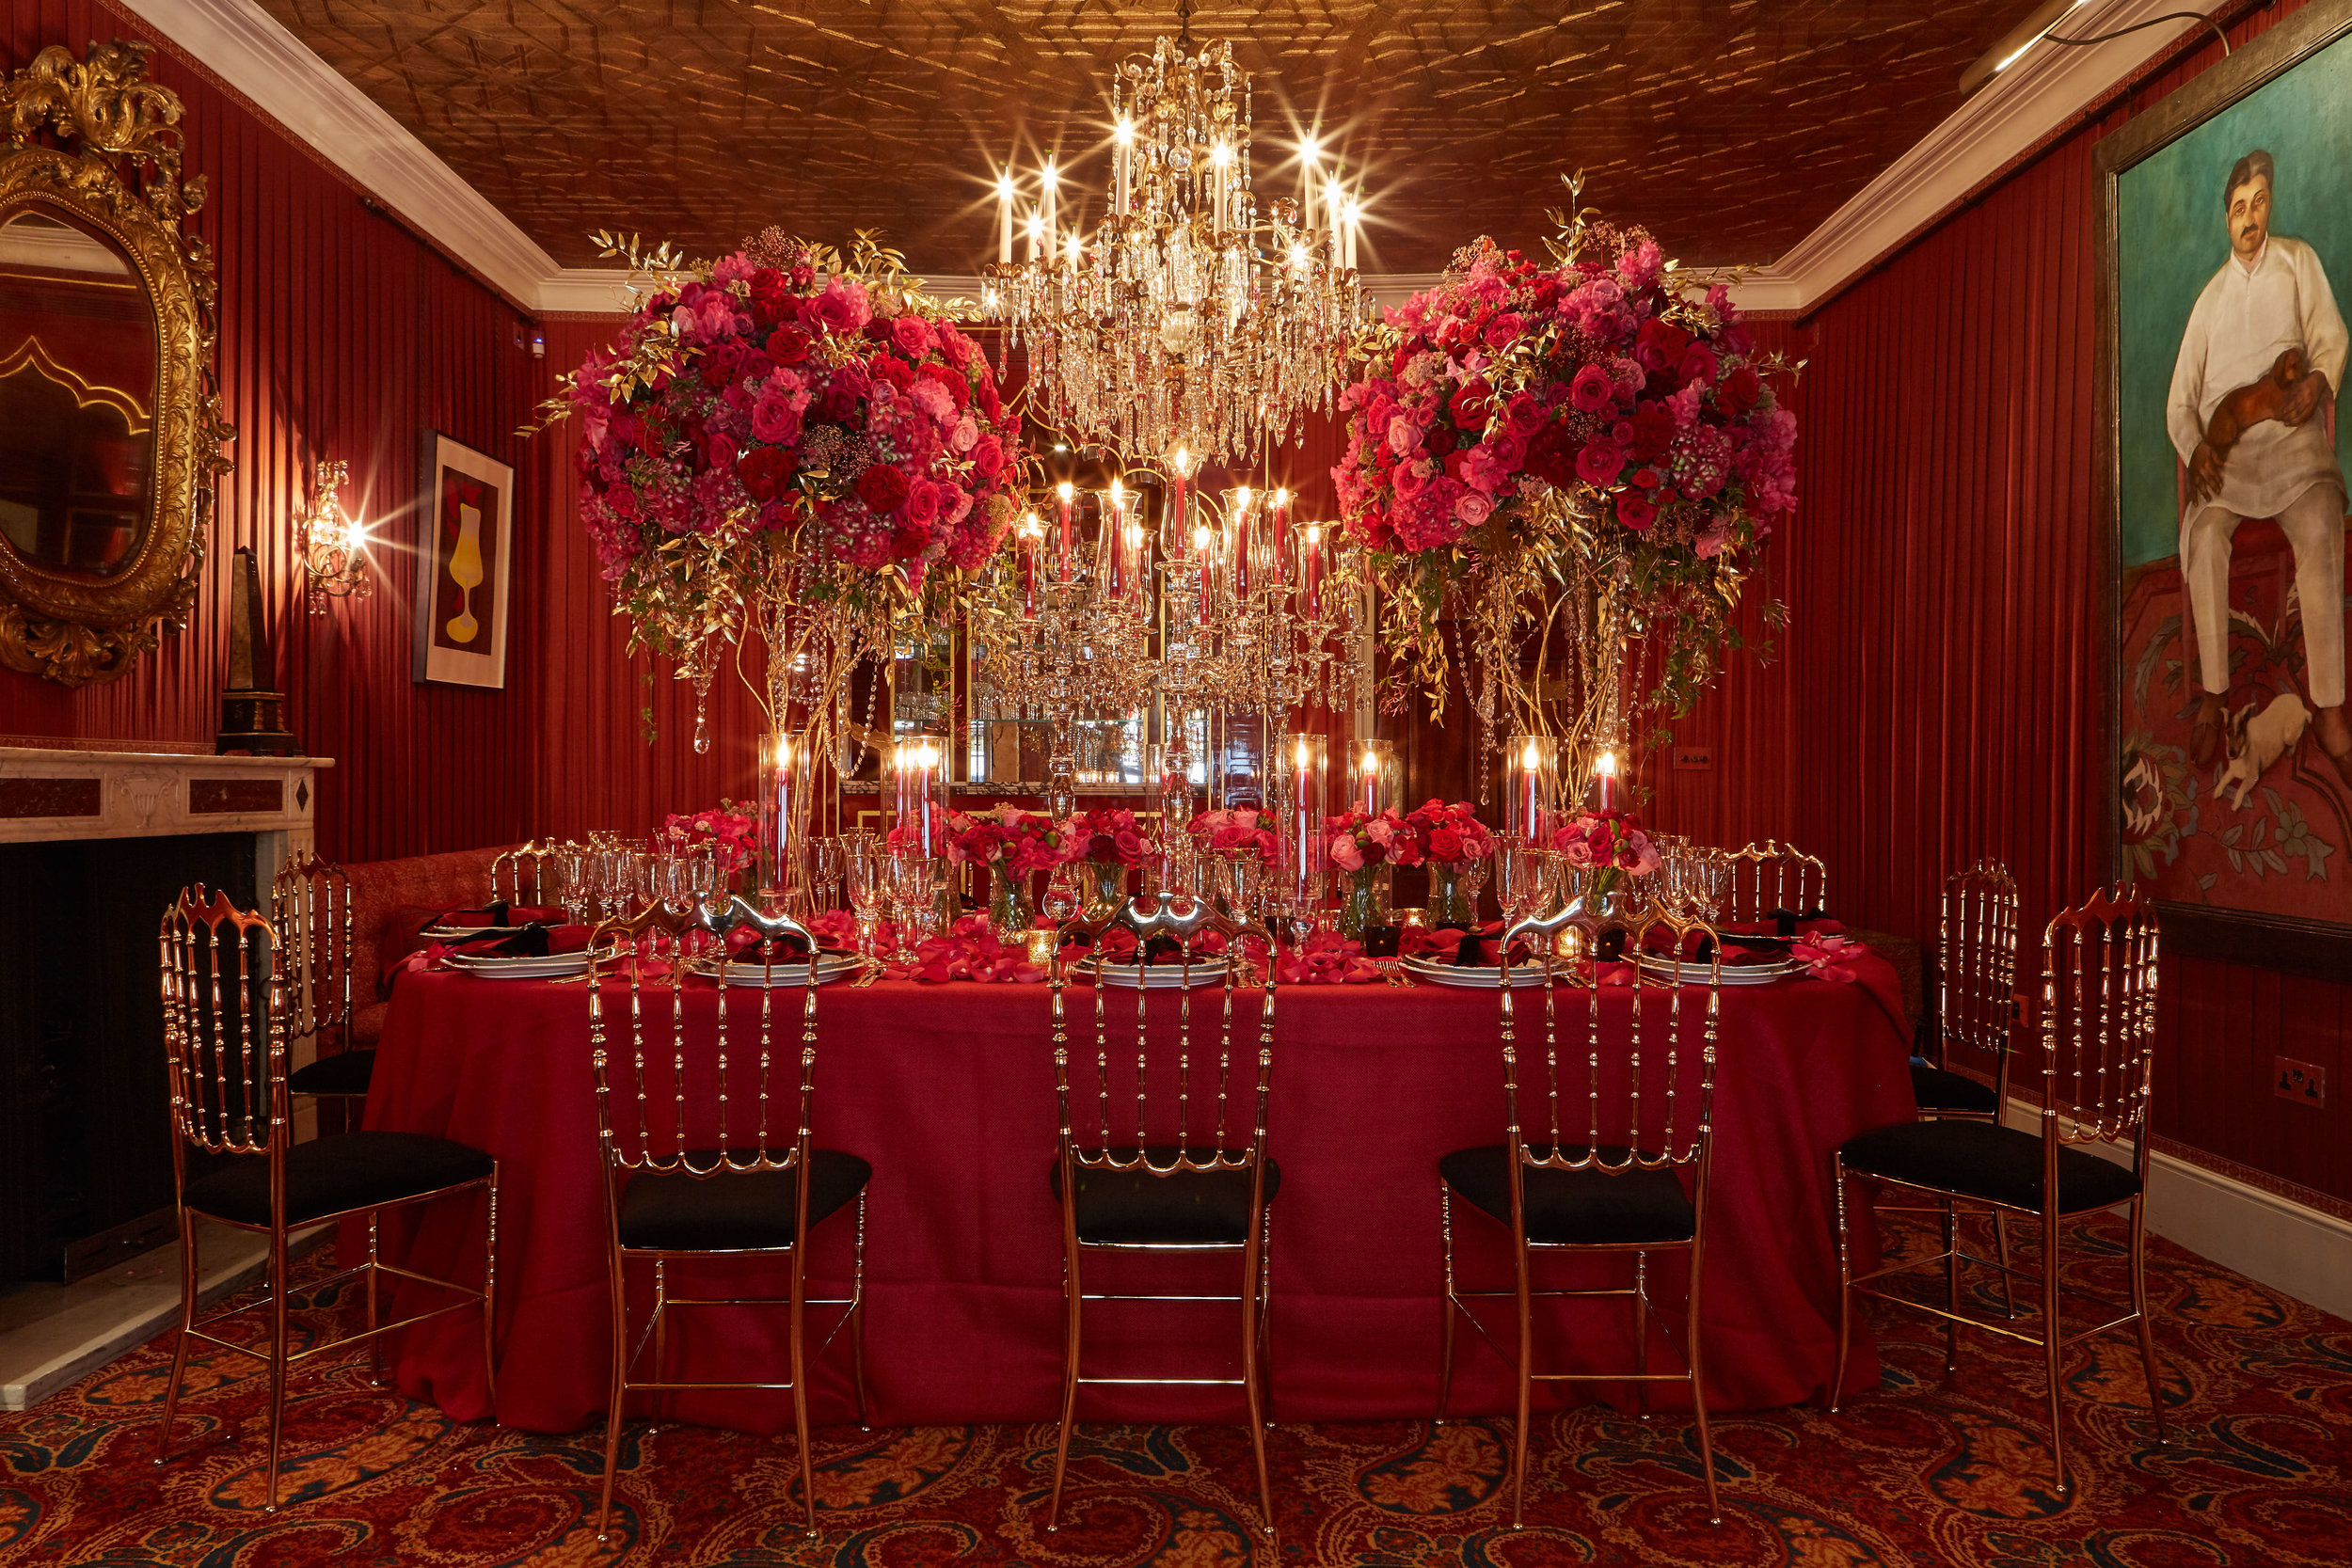 Evoking a sense of romance, Mark's Club can adapt to make your creative vision a reality